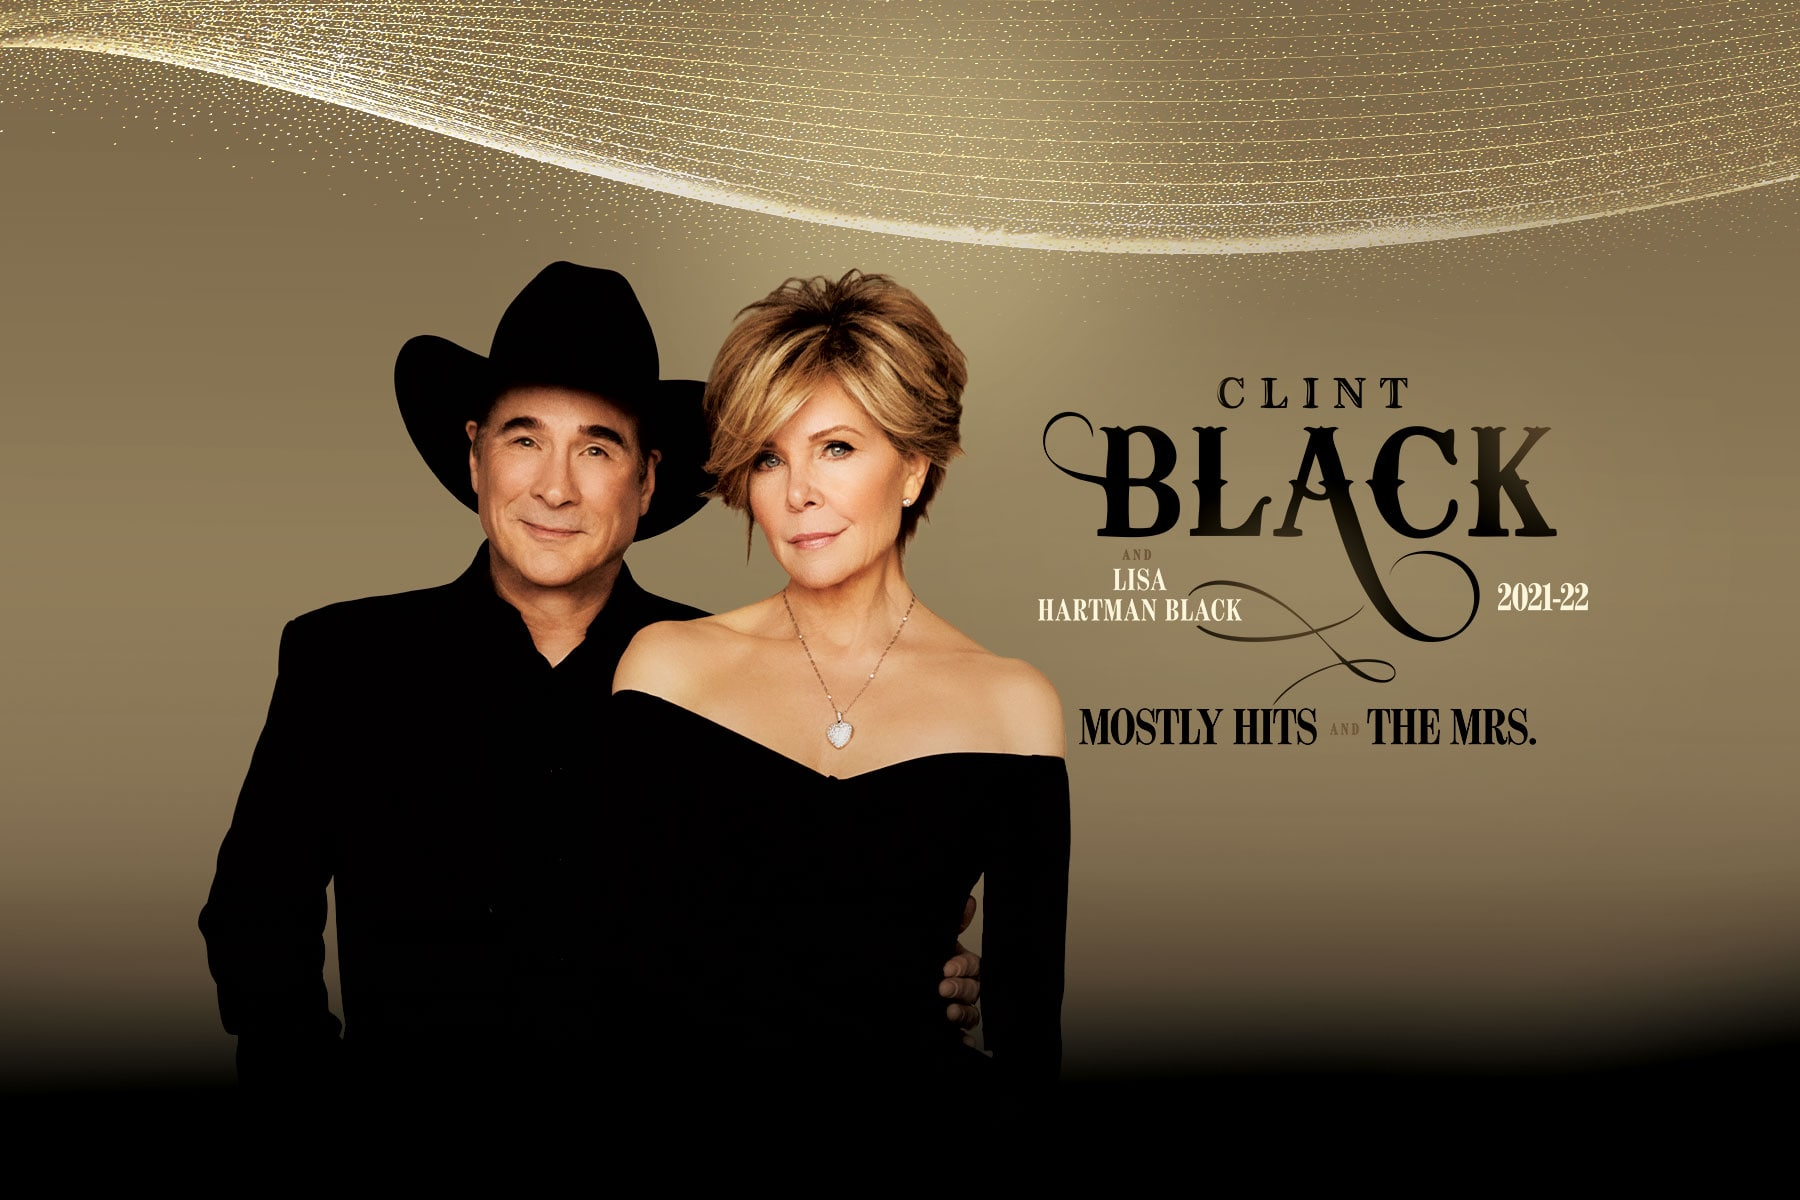 live music, concert, clint black, country music, lisa hartman black, things to do in dc, capital one hall, capital one center